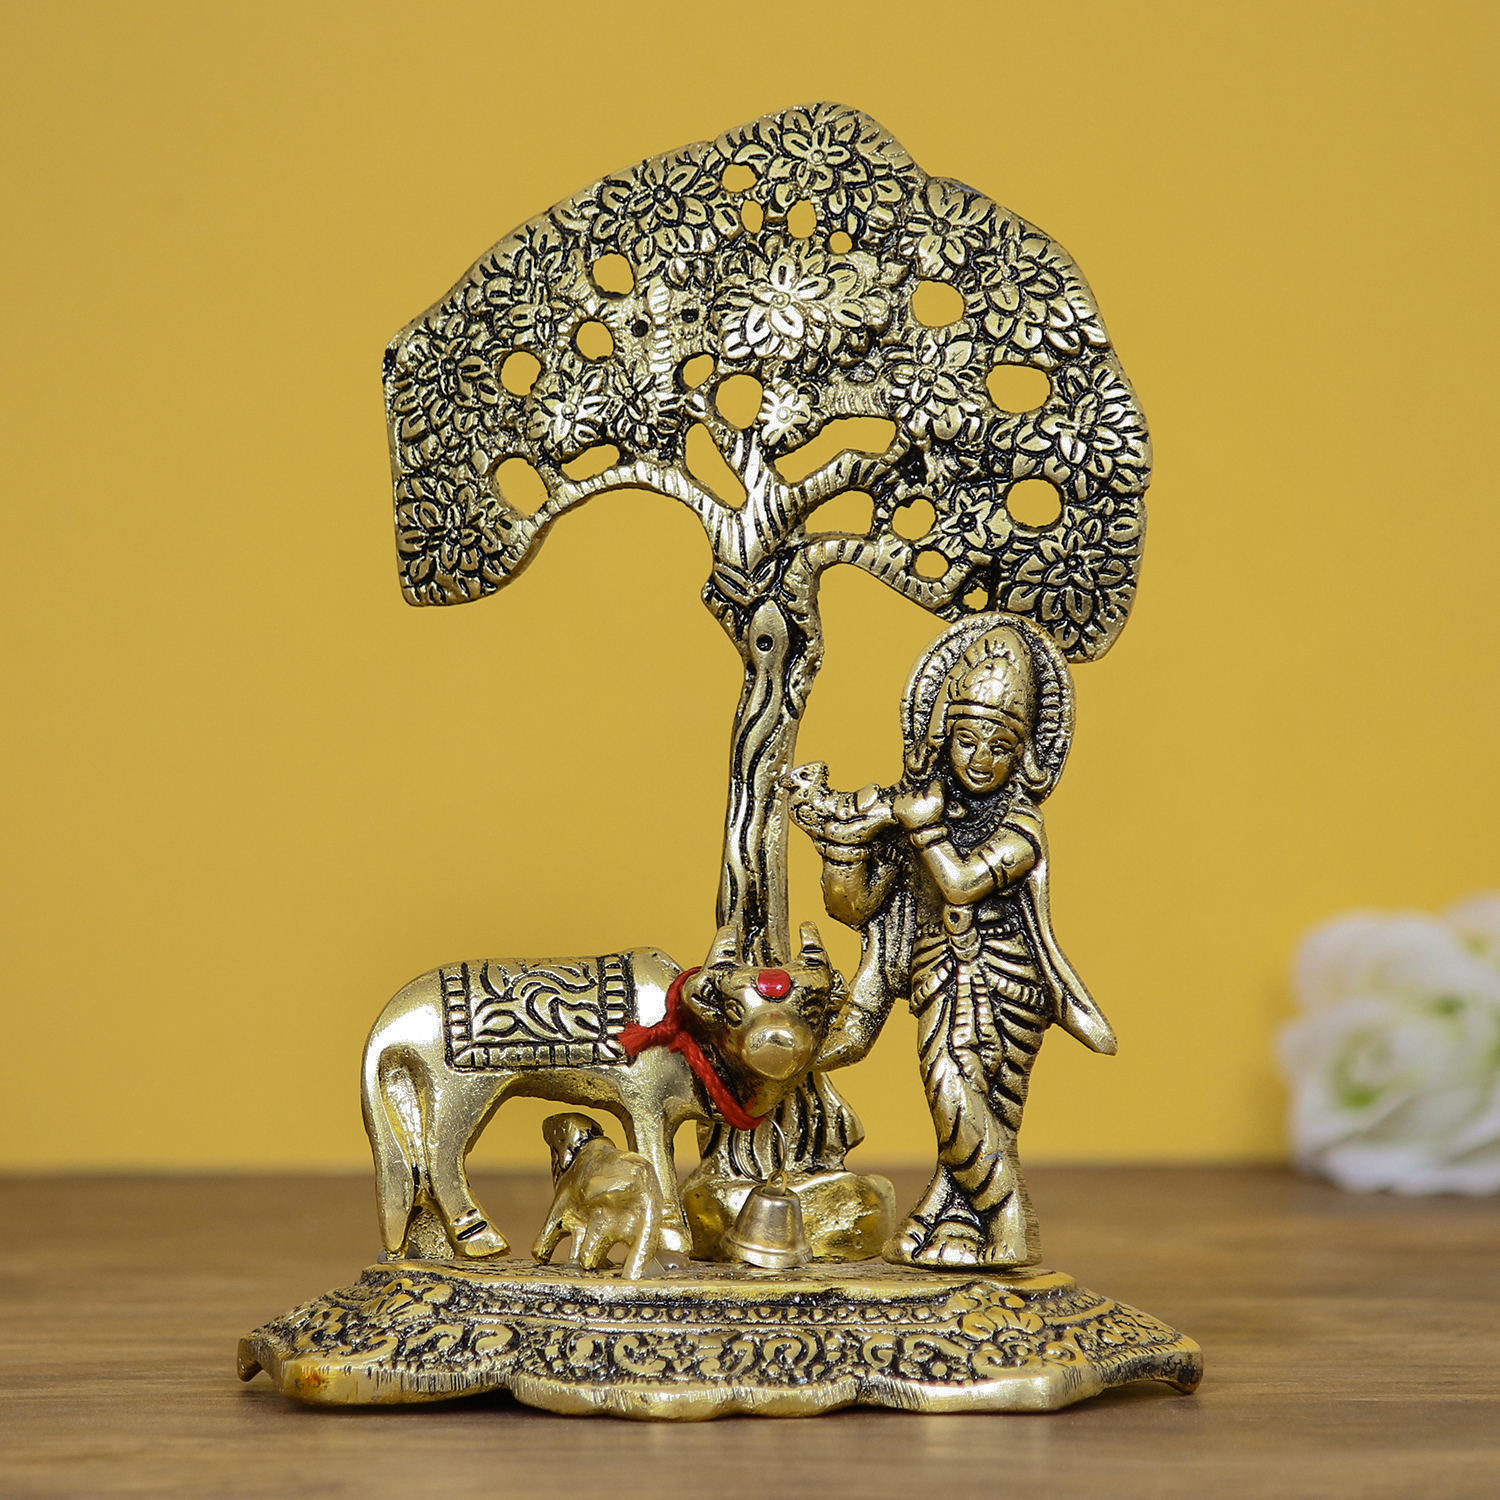 Lord Krishna playing Flute under Tree with Golden Cow and Calf Showpiece Indian Home Decor